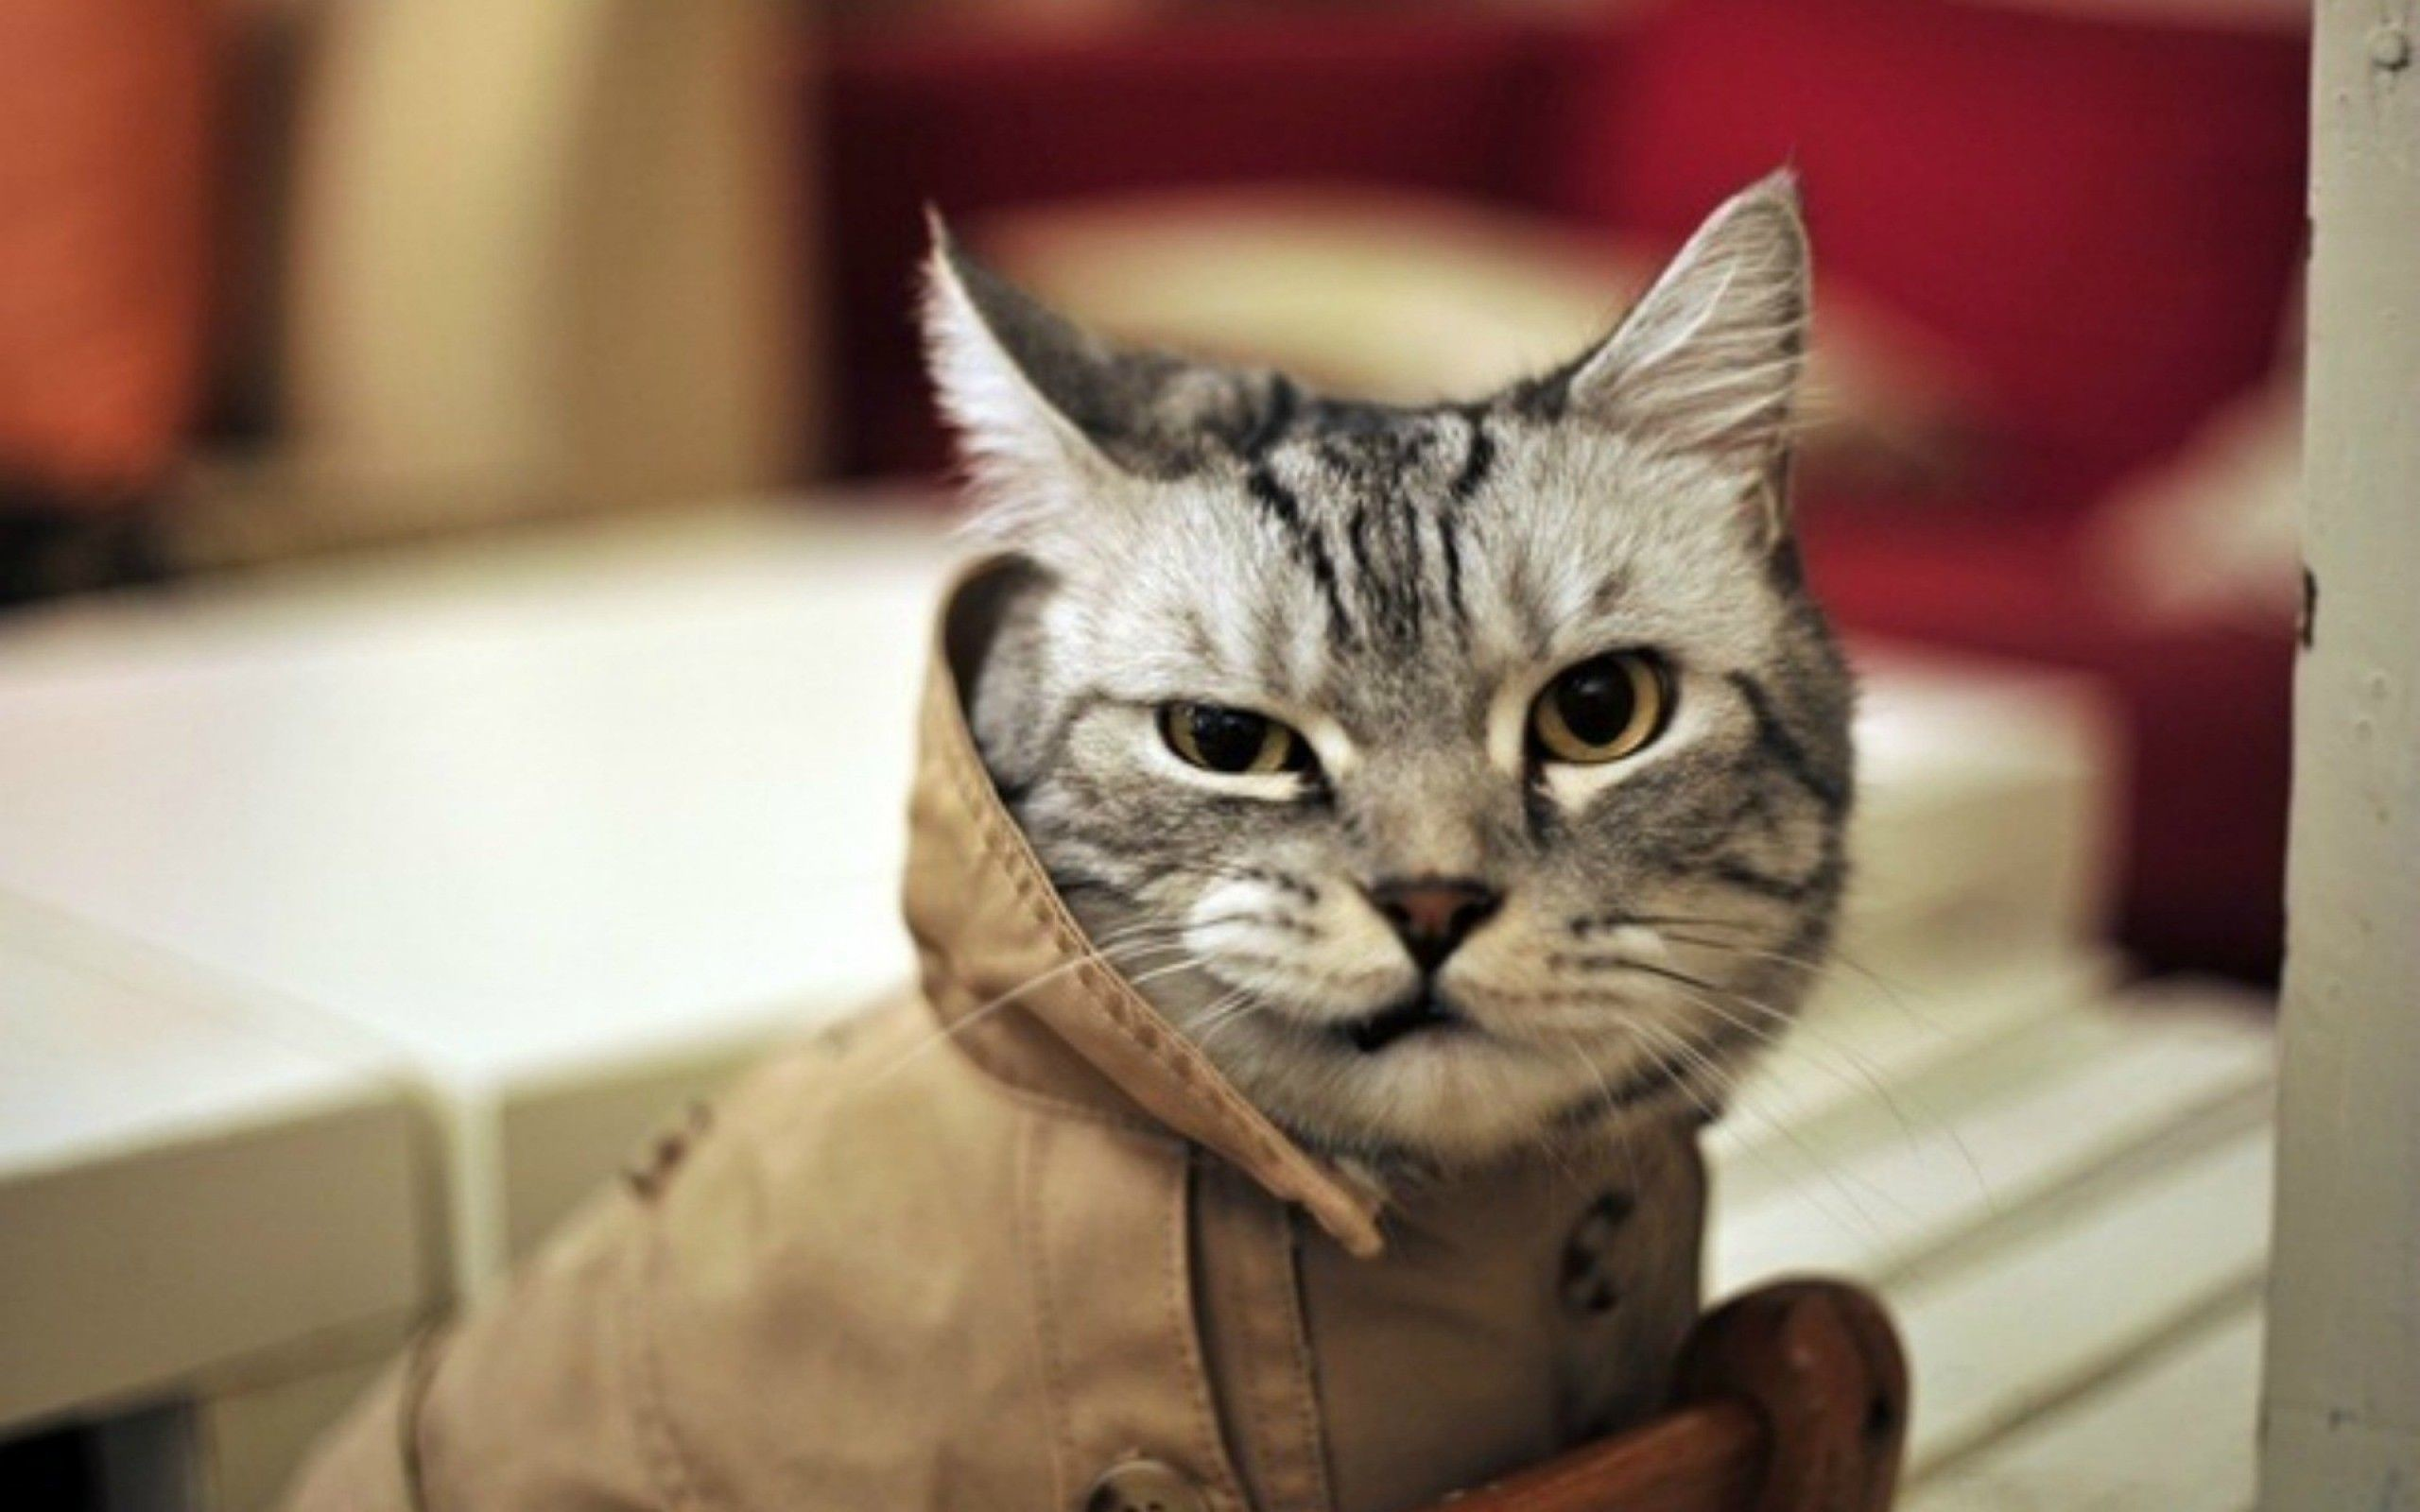 2560x1600 Funny Cat Wallpapers : Find best latest Funny Cat Wallpapers for your PC desktop background